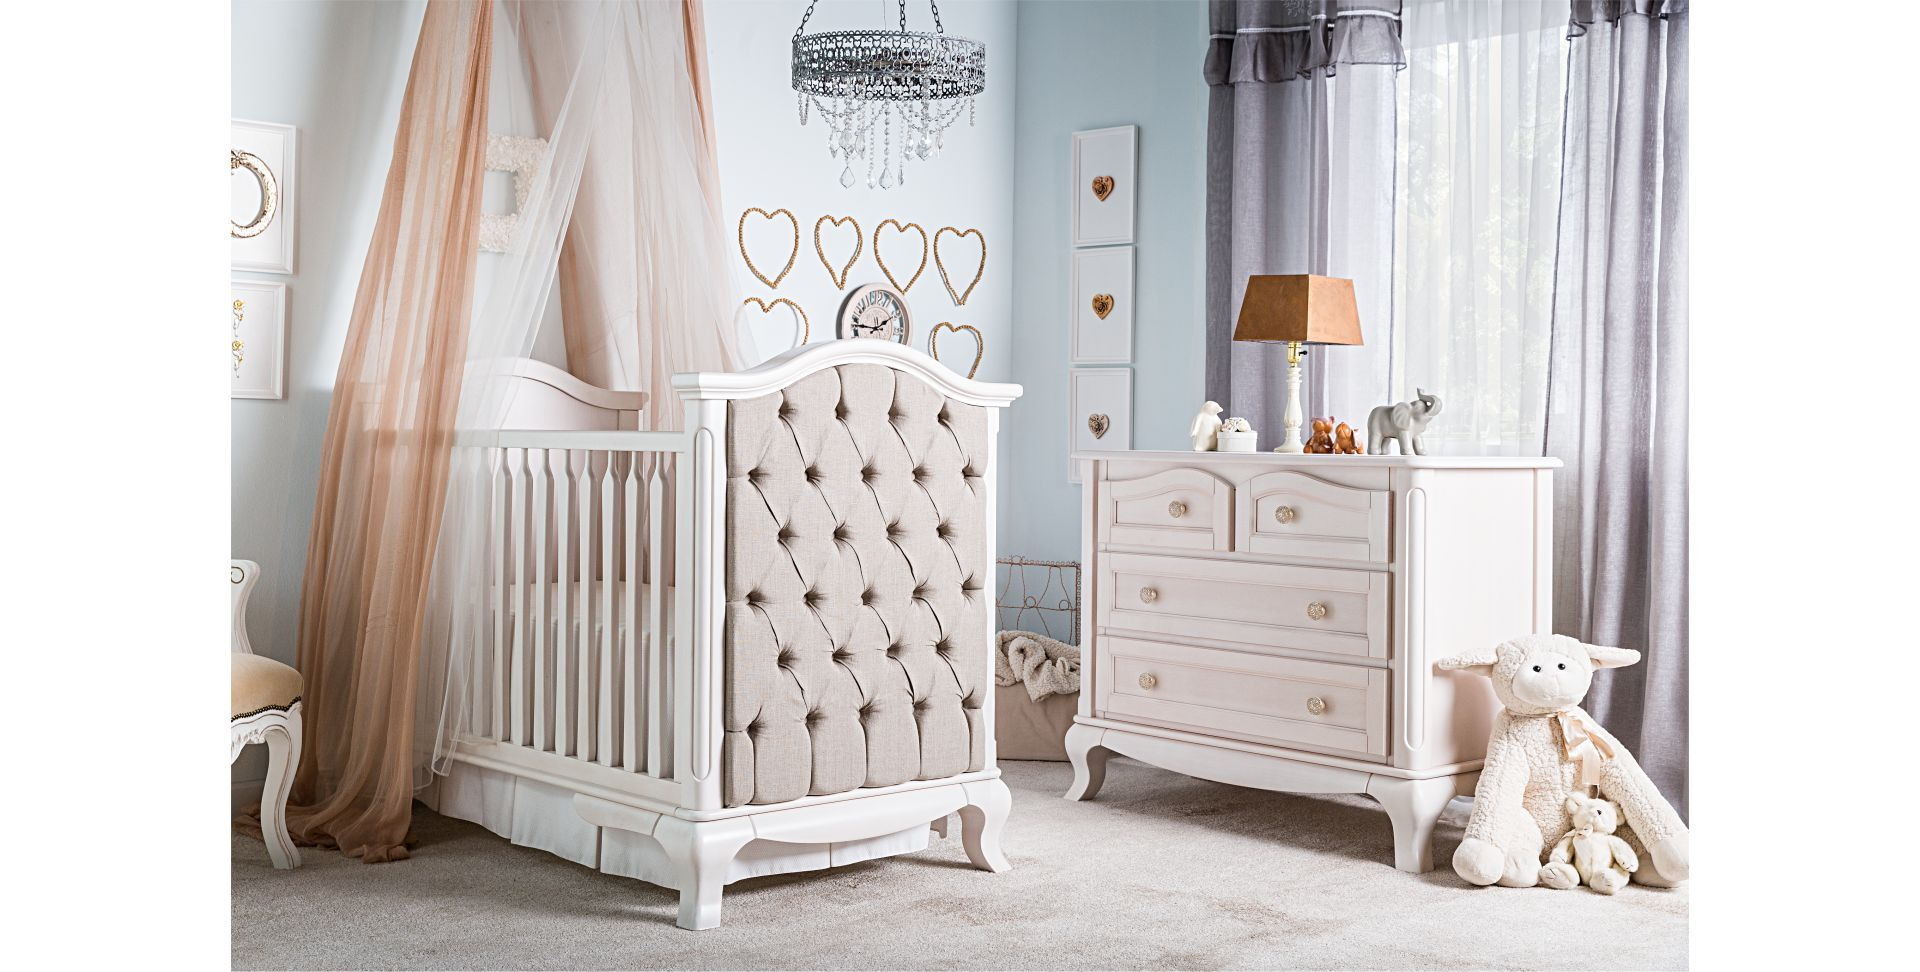 solid wood baby furniture. Products - Romina Furniture Best Baby Furniture, Solid Wood, Cribs Wood